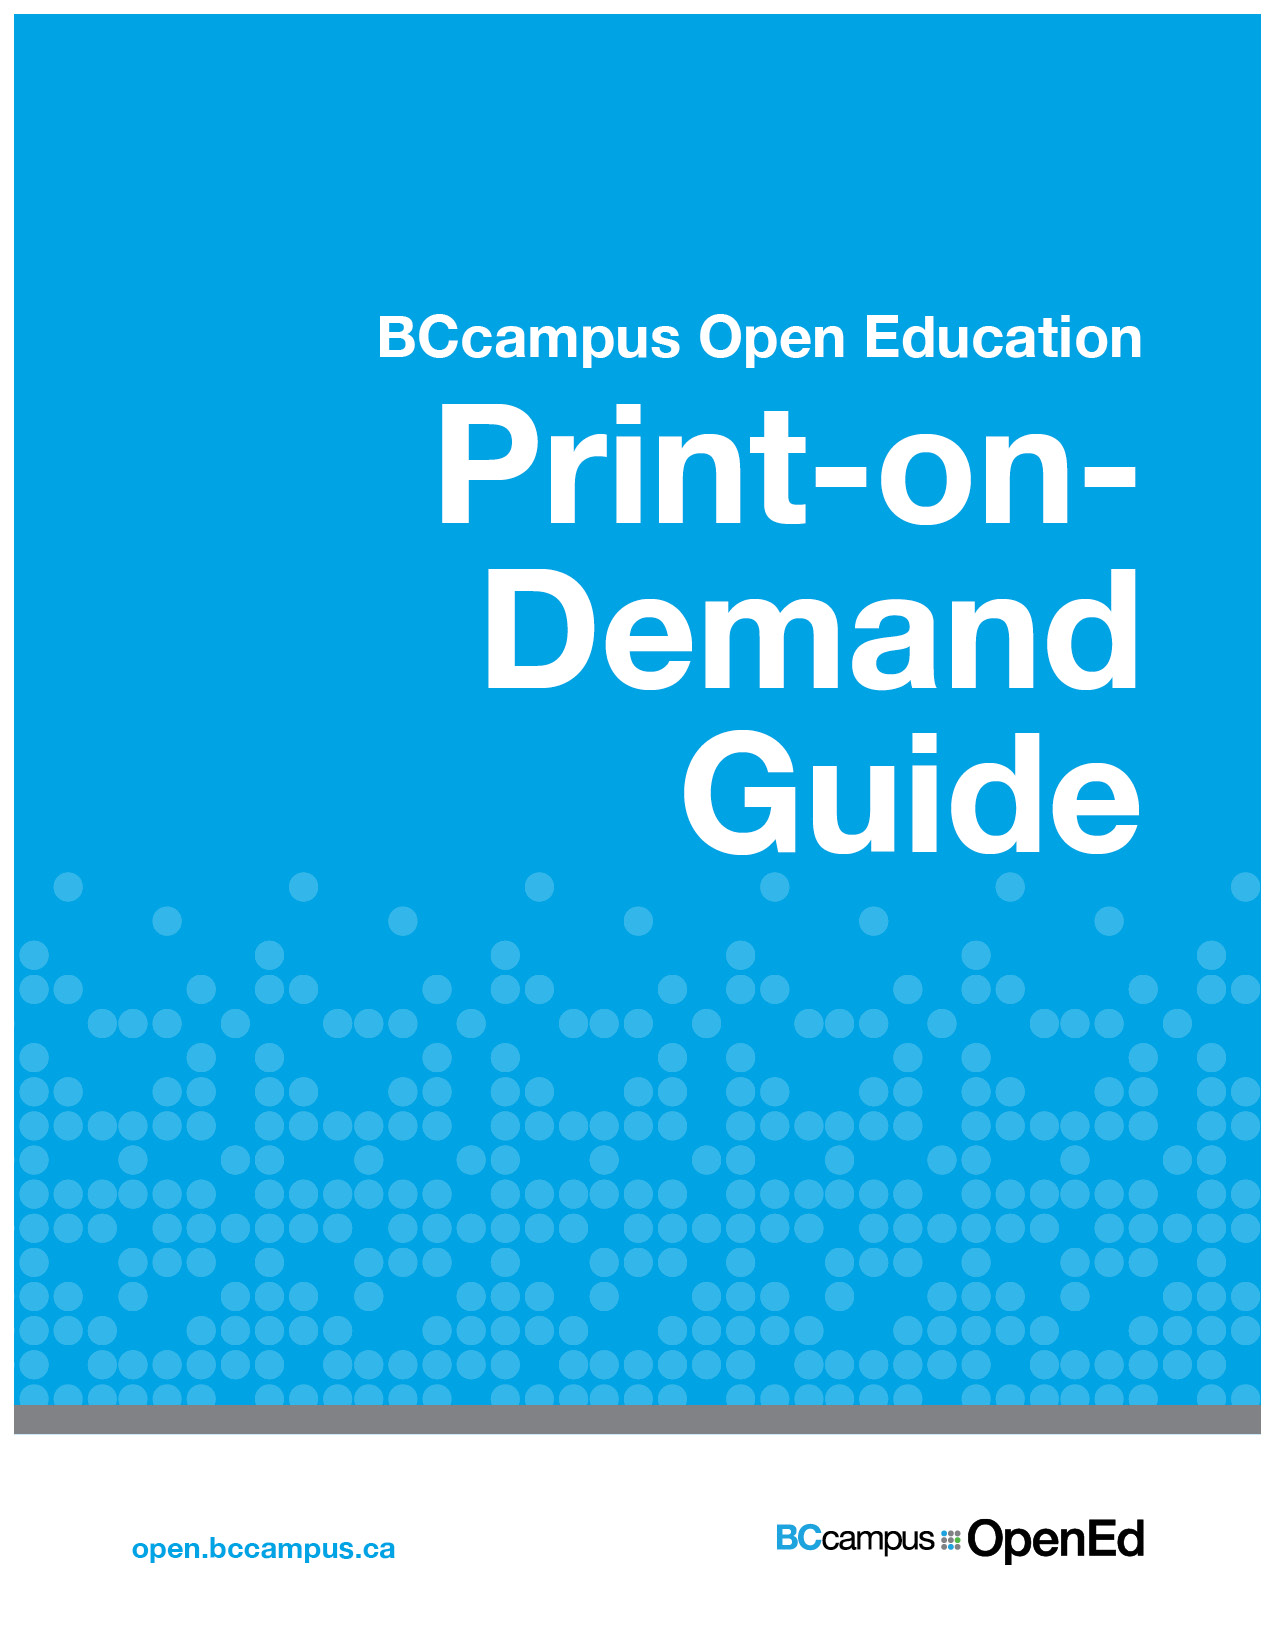 Cover image for Print-on-Demand Guide